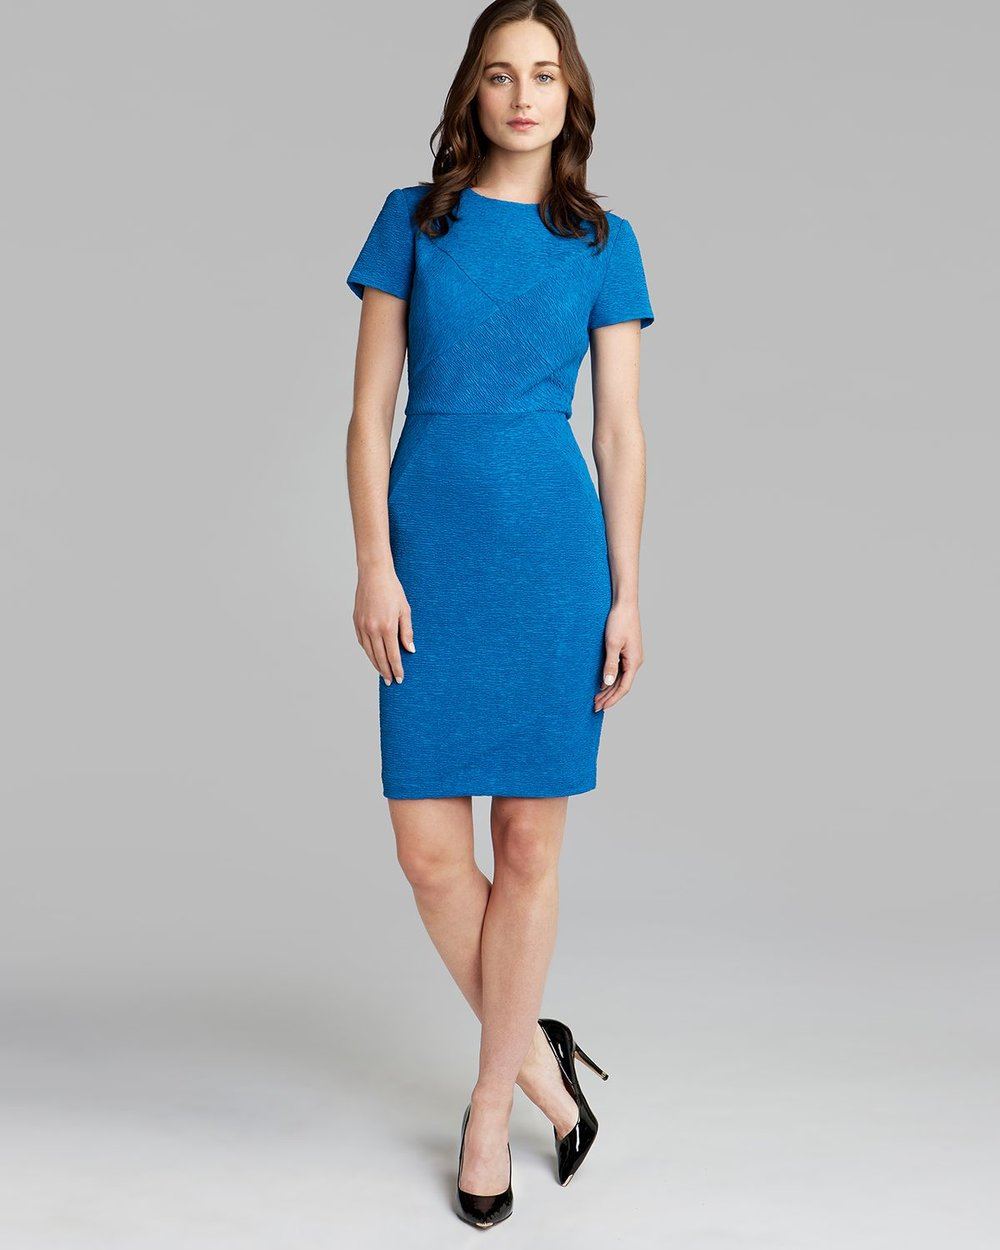 ted-baker-blue-bodycon-dress-textured-nedeli-product-1-14818142-209948010.jpg